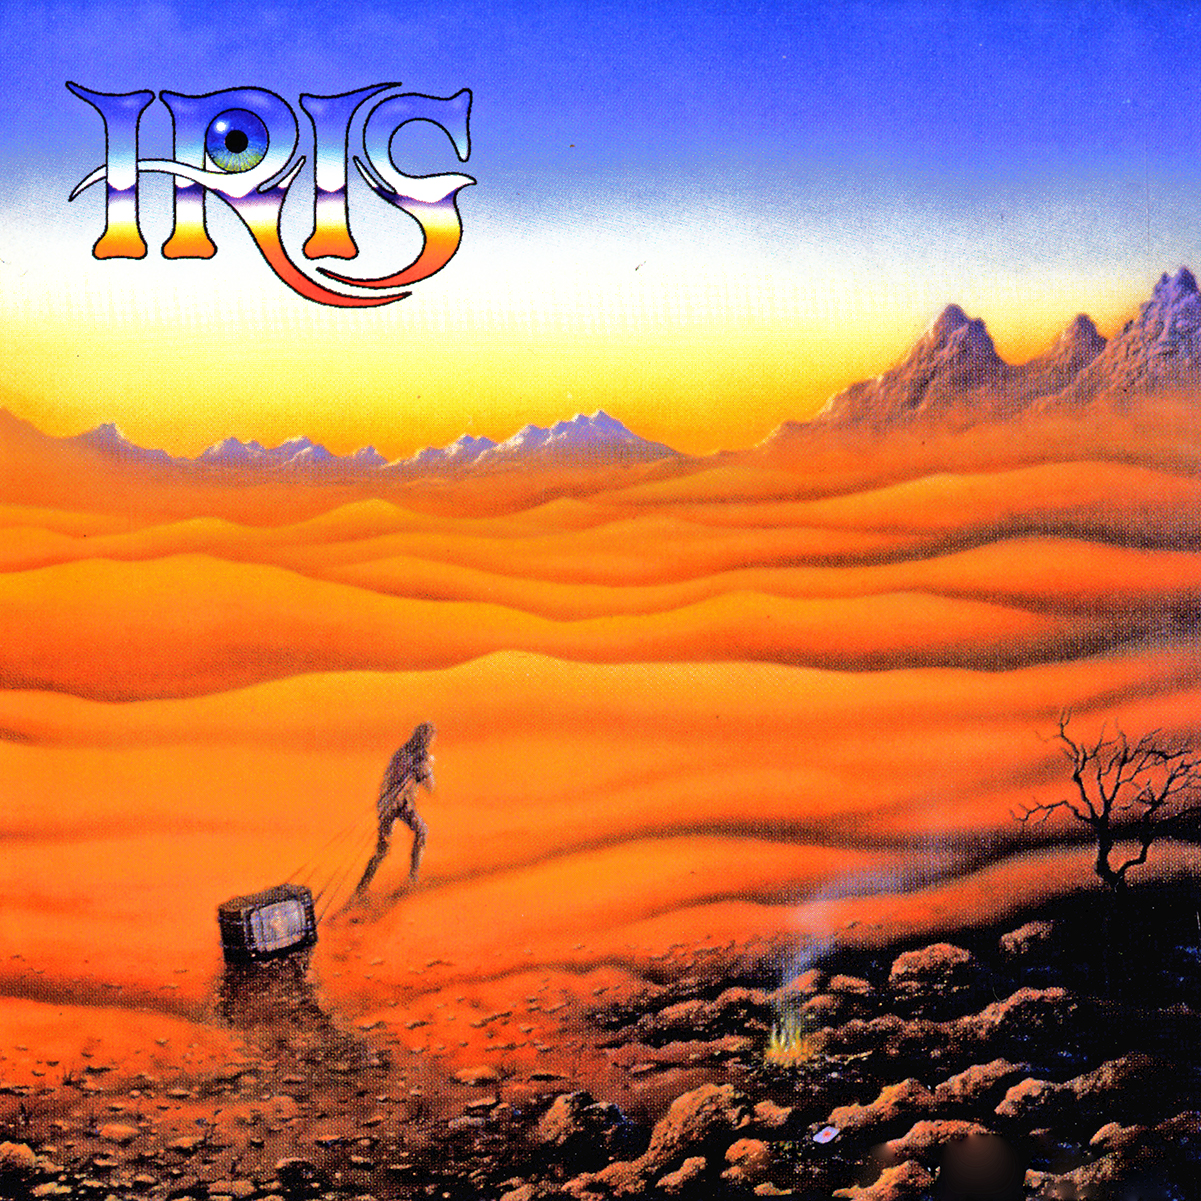 IRIS 'CROSSING THE DESERT' 256 KBPS ALBUM DOWNLOAD